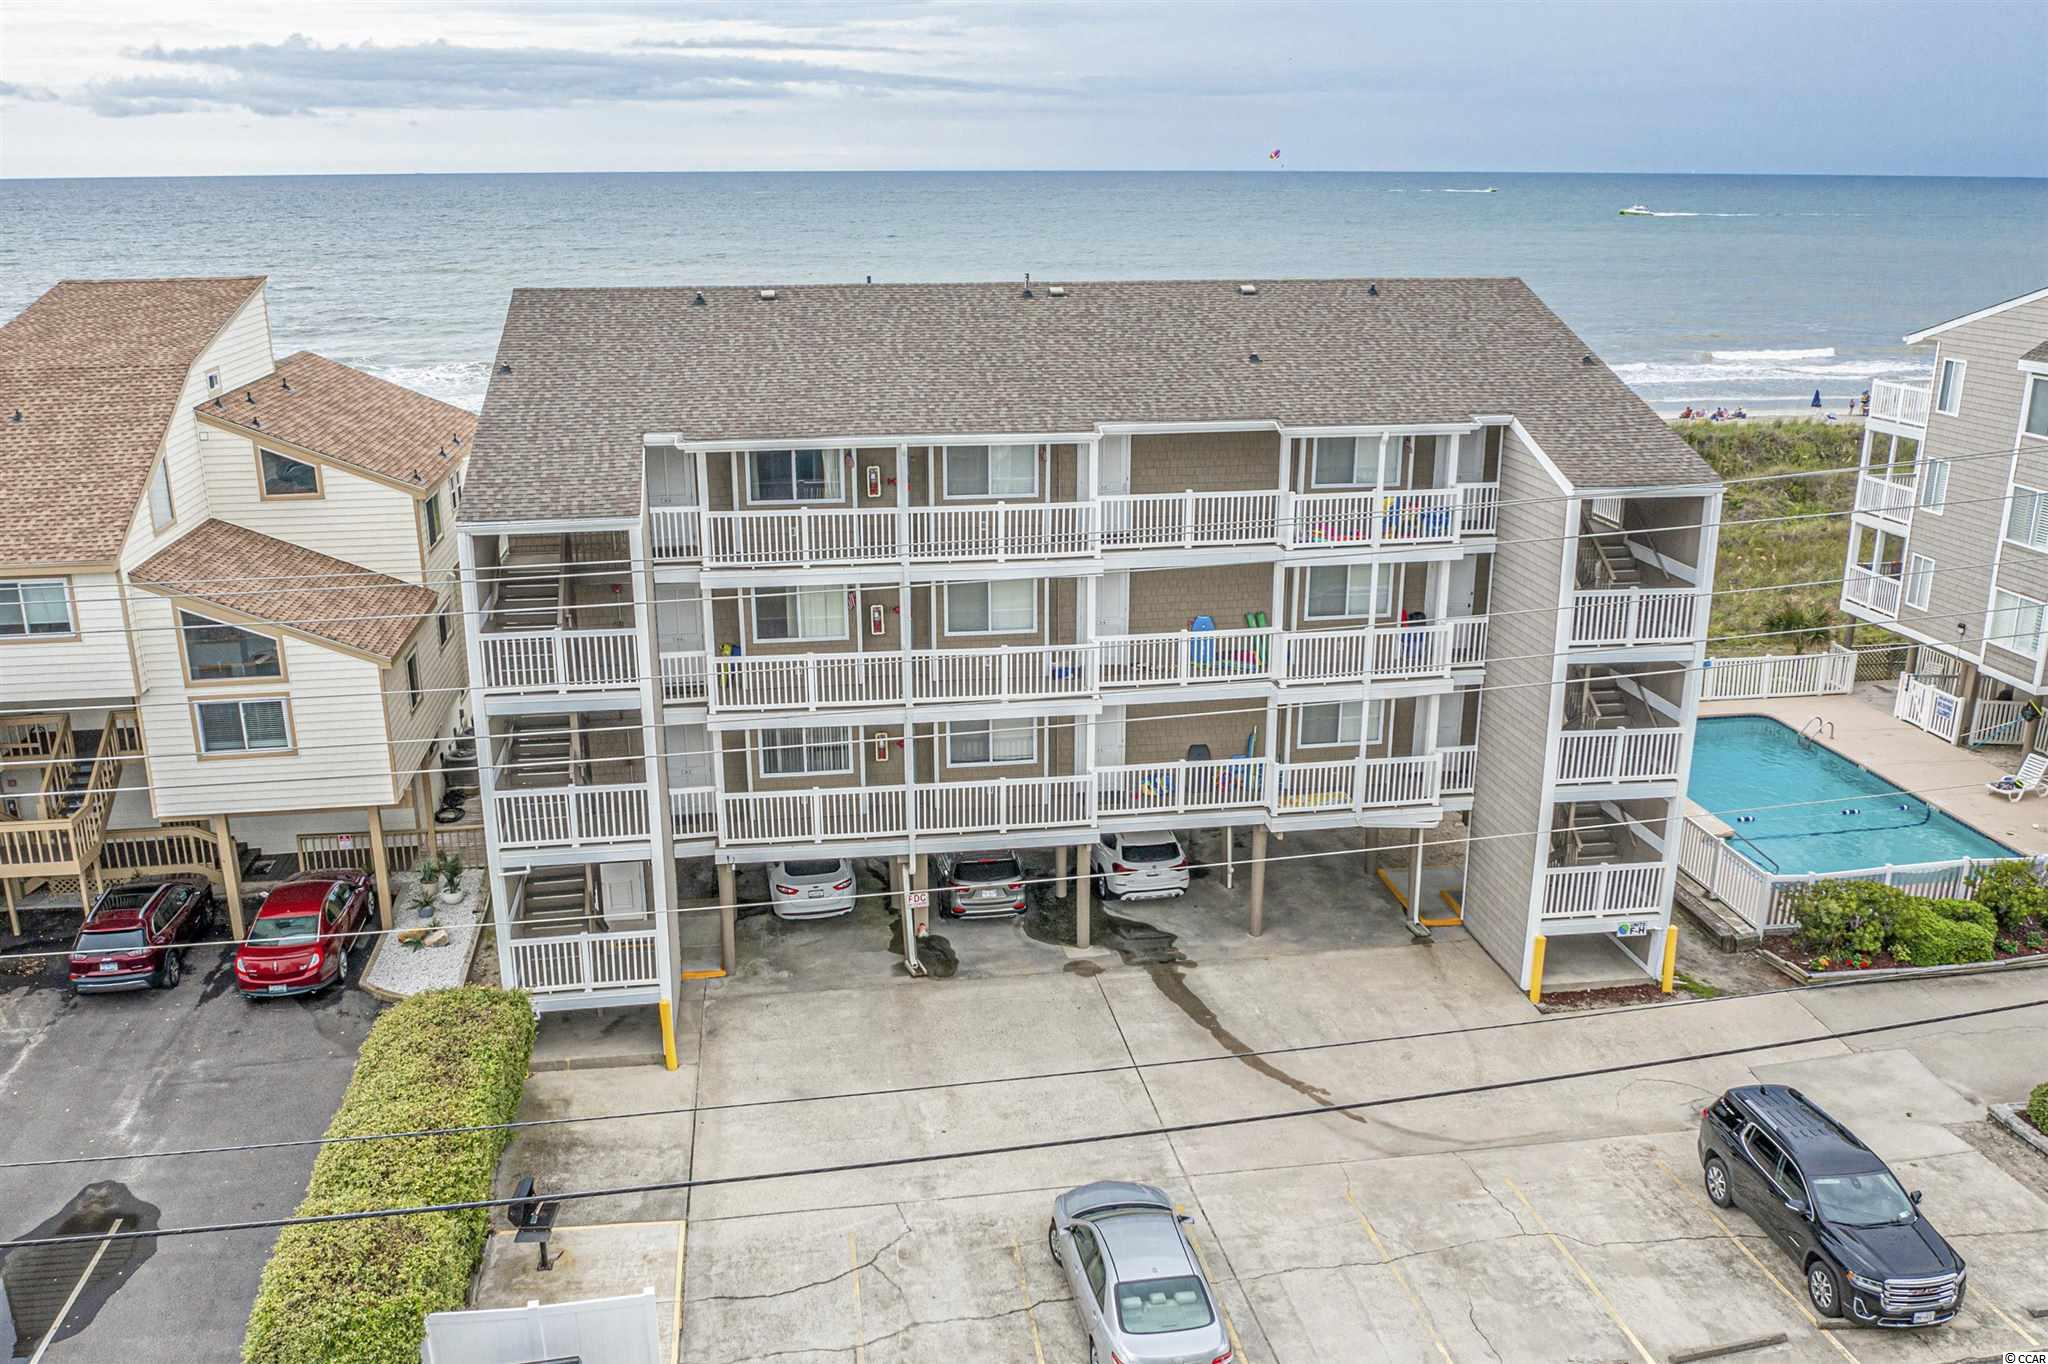 This is the one! This first floor, end unit has breathtaking views of the ocean. Located in the highly desirable Raintree Villas in Cherry Grove, this 2 bedroom, 2 bath condo is being sold fully furnished. This unit has never been rented and well taken care of over the years. This is one unit of 9 total in the building. Enjoy afternoons in the pool or bring your beach chair and umbrella and make a day at the beach! New HVAC in 2020. Low inclusive monthly HOA. Pack your bags and get ready to live the beach life!